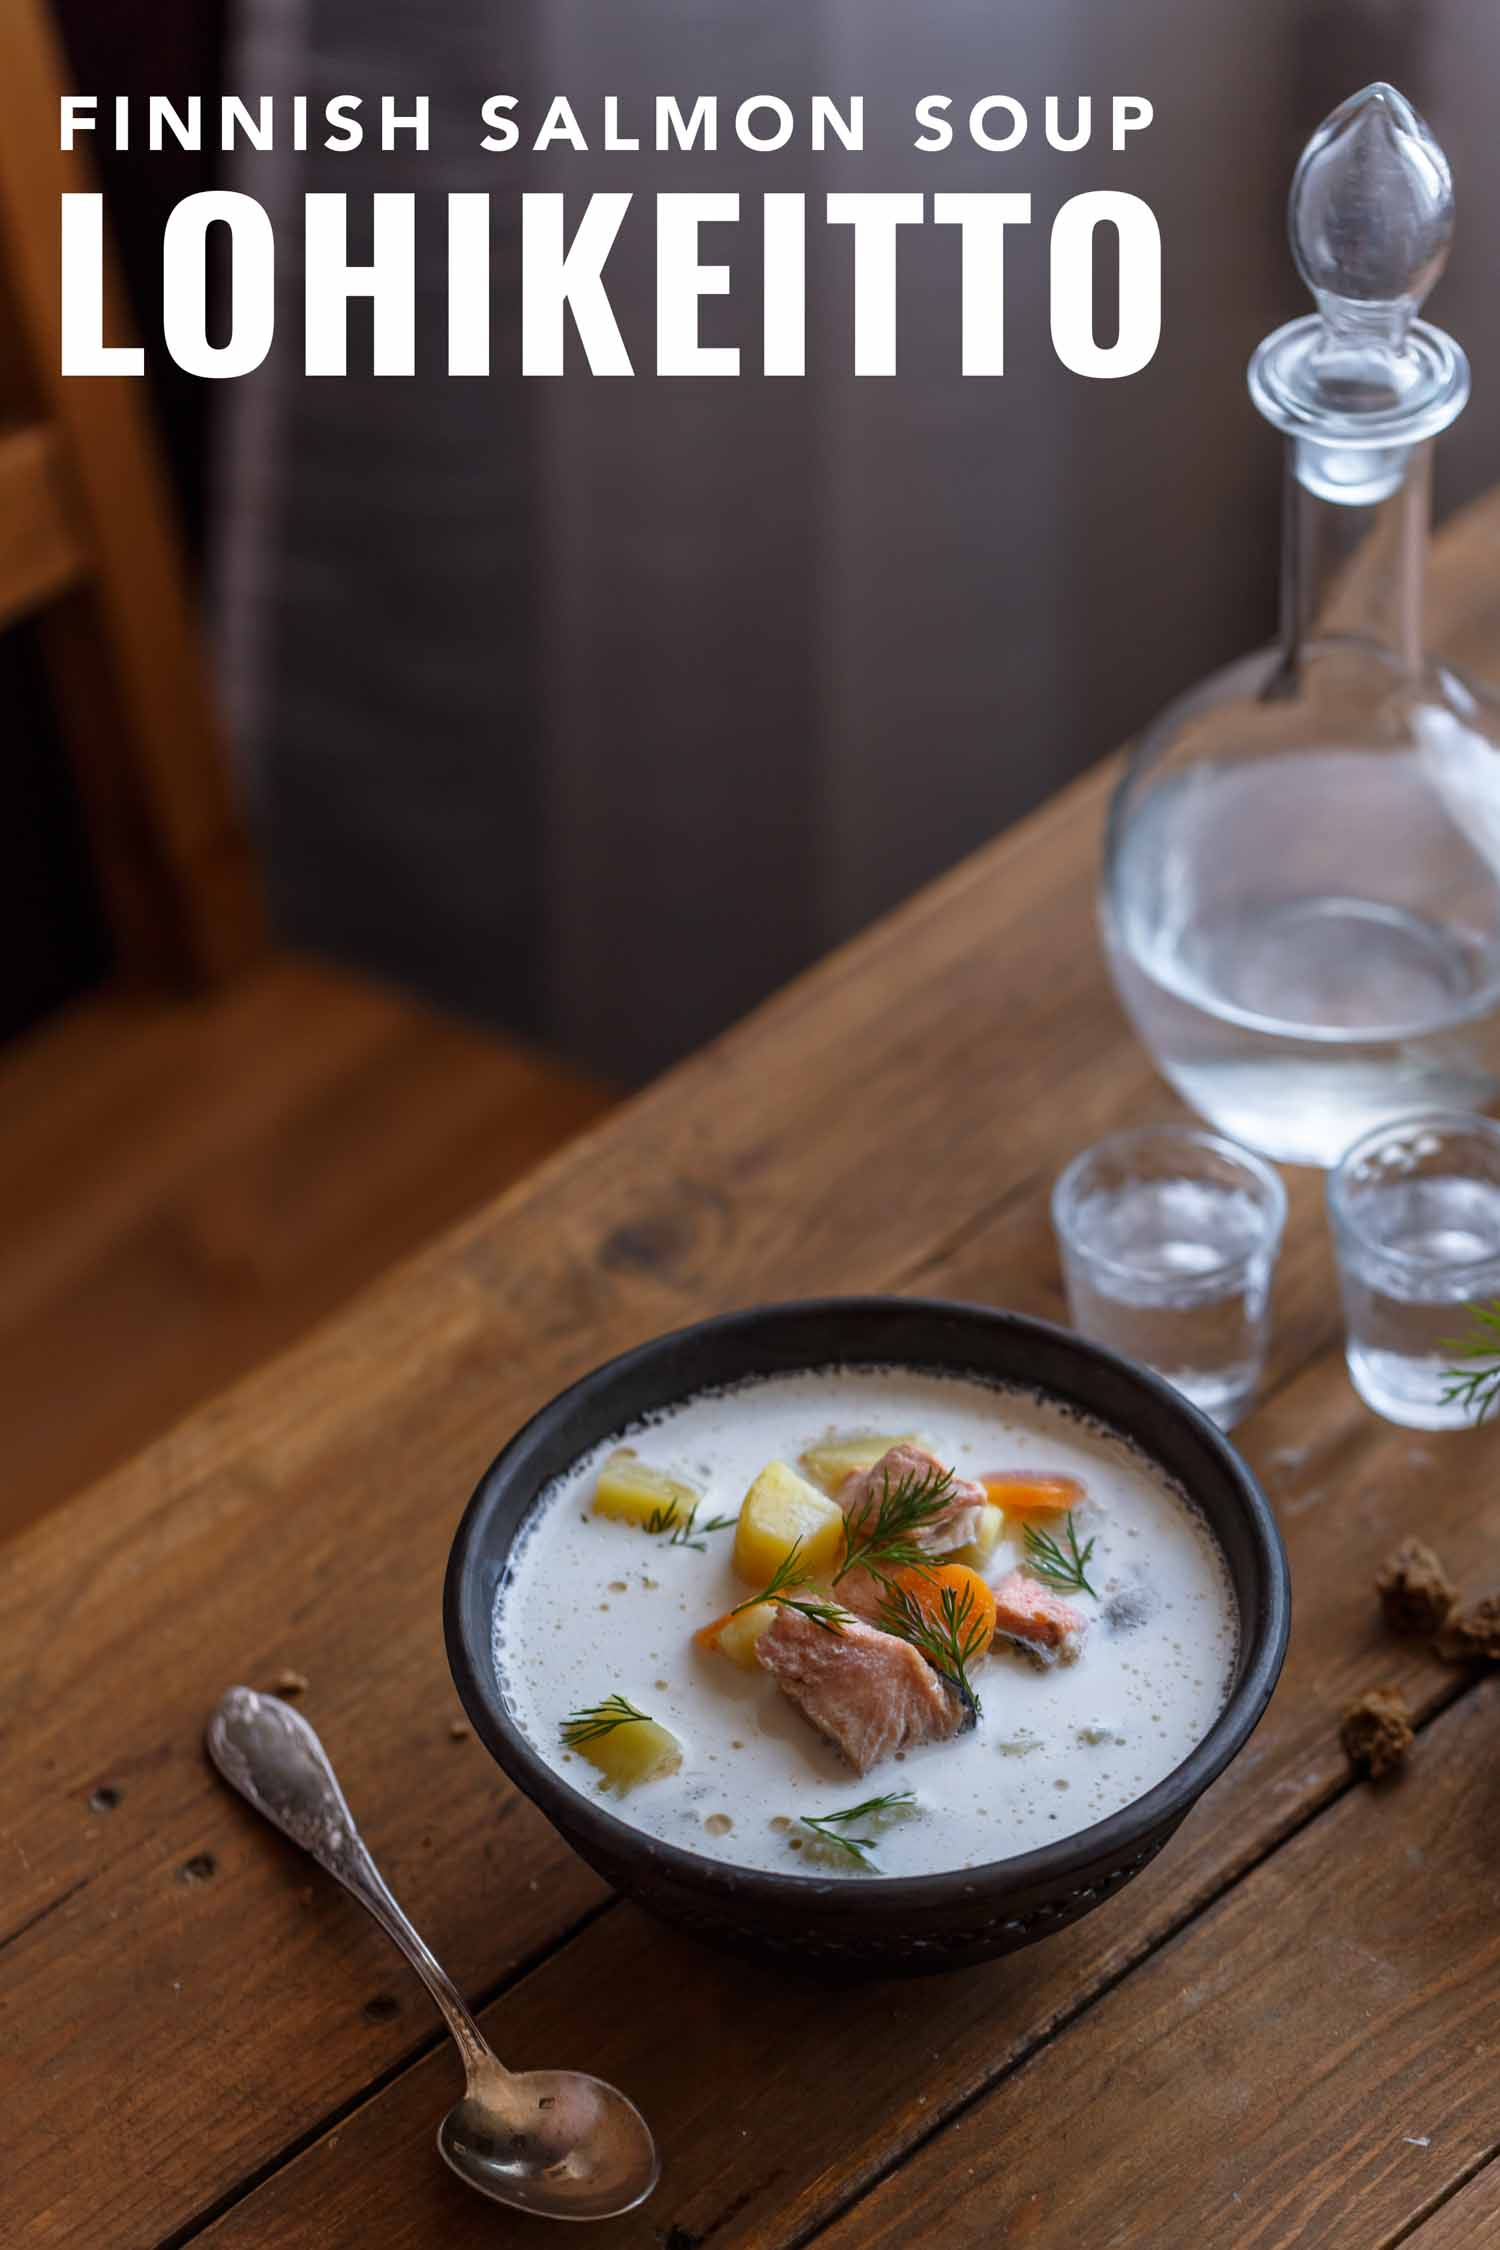 Lohikeitto, Finnish salmon soup, on wooden table.